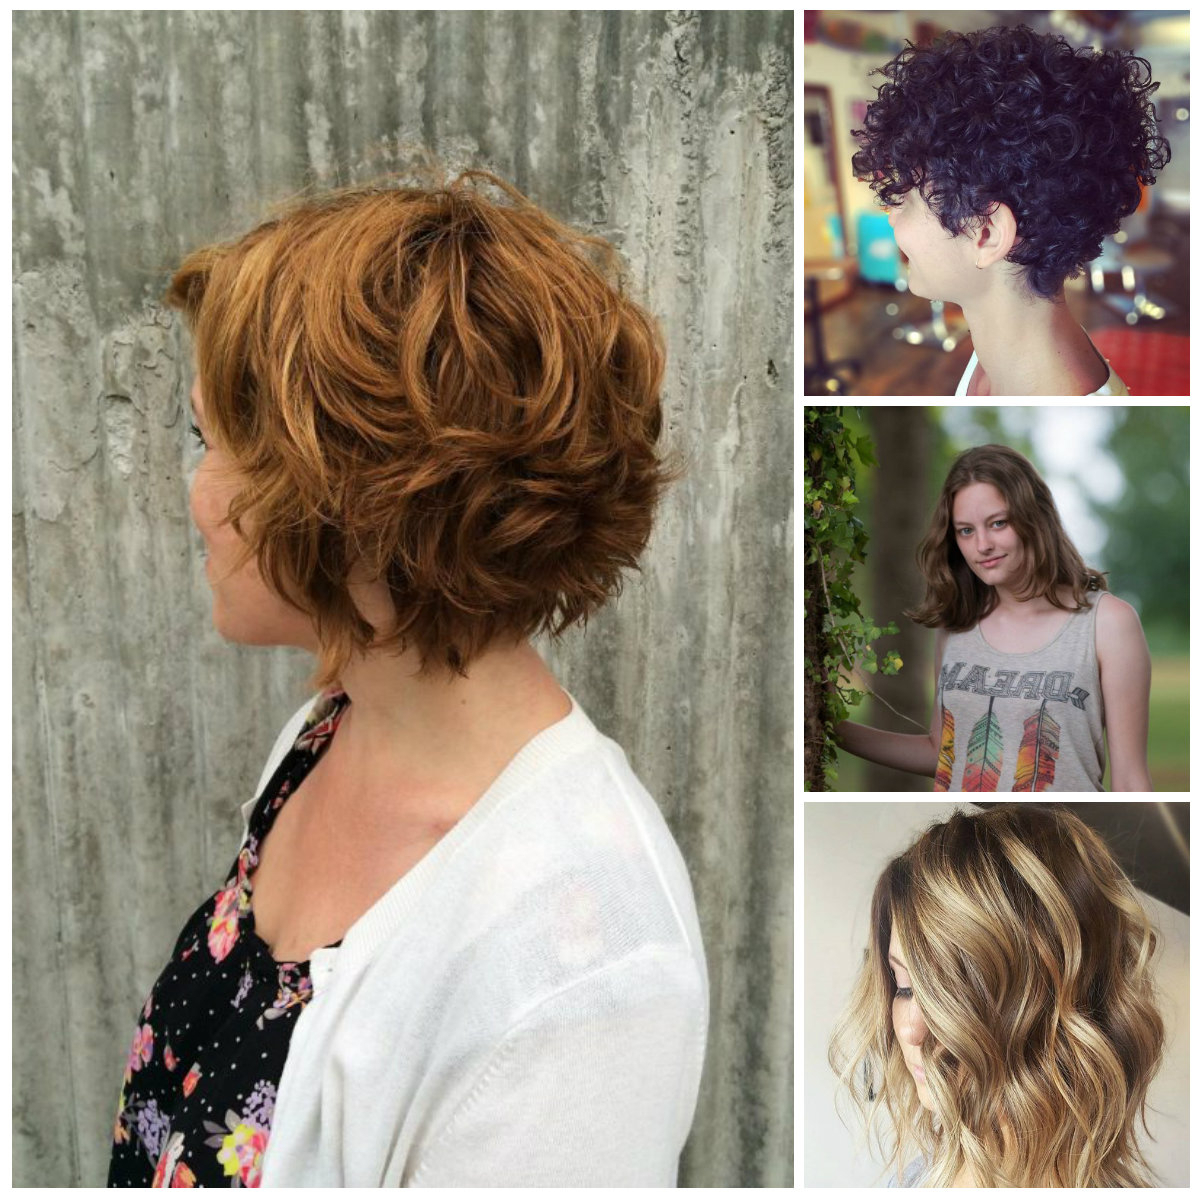 Stylish Short Wavy Hairstyle For 2017 | 2019 Haircuts, Hairstyles With Regard To Trendy Short Curly Hairstyles (View 23 of 25)